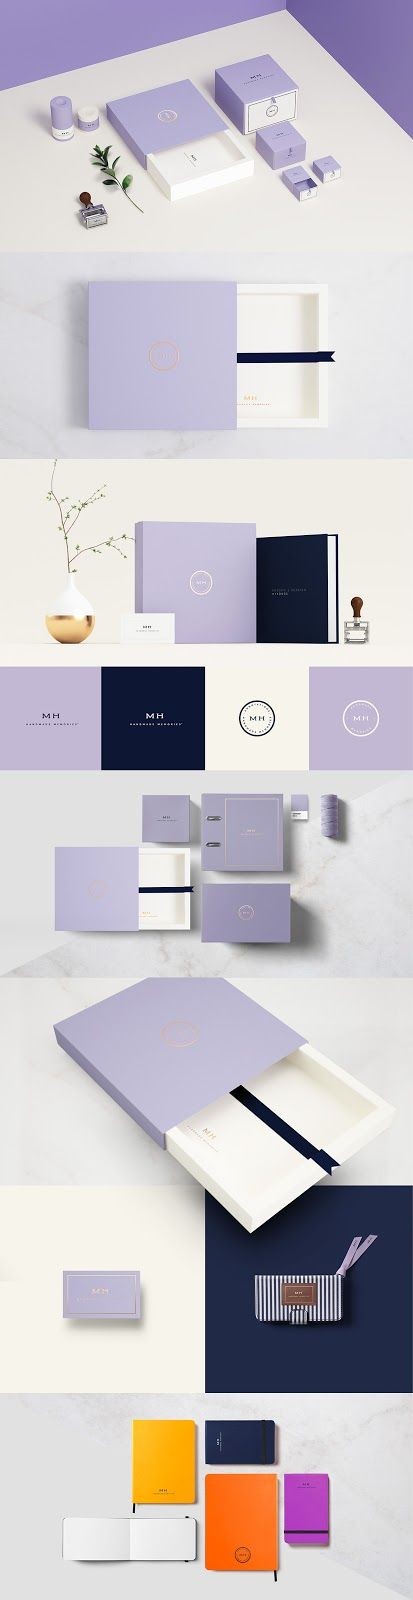 Graphic Design | Packaging Design | Packaging Projects with Sweety & Co.